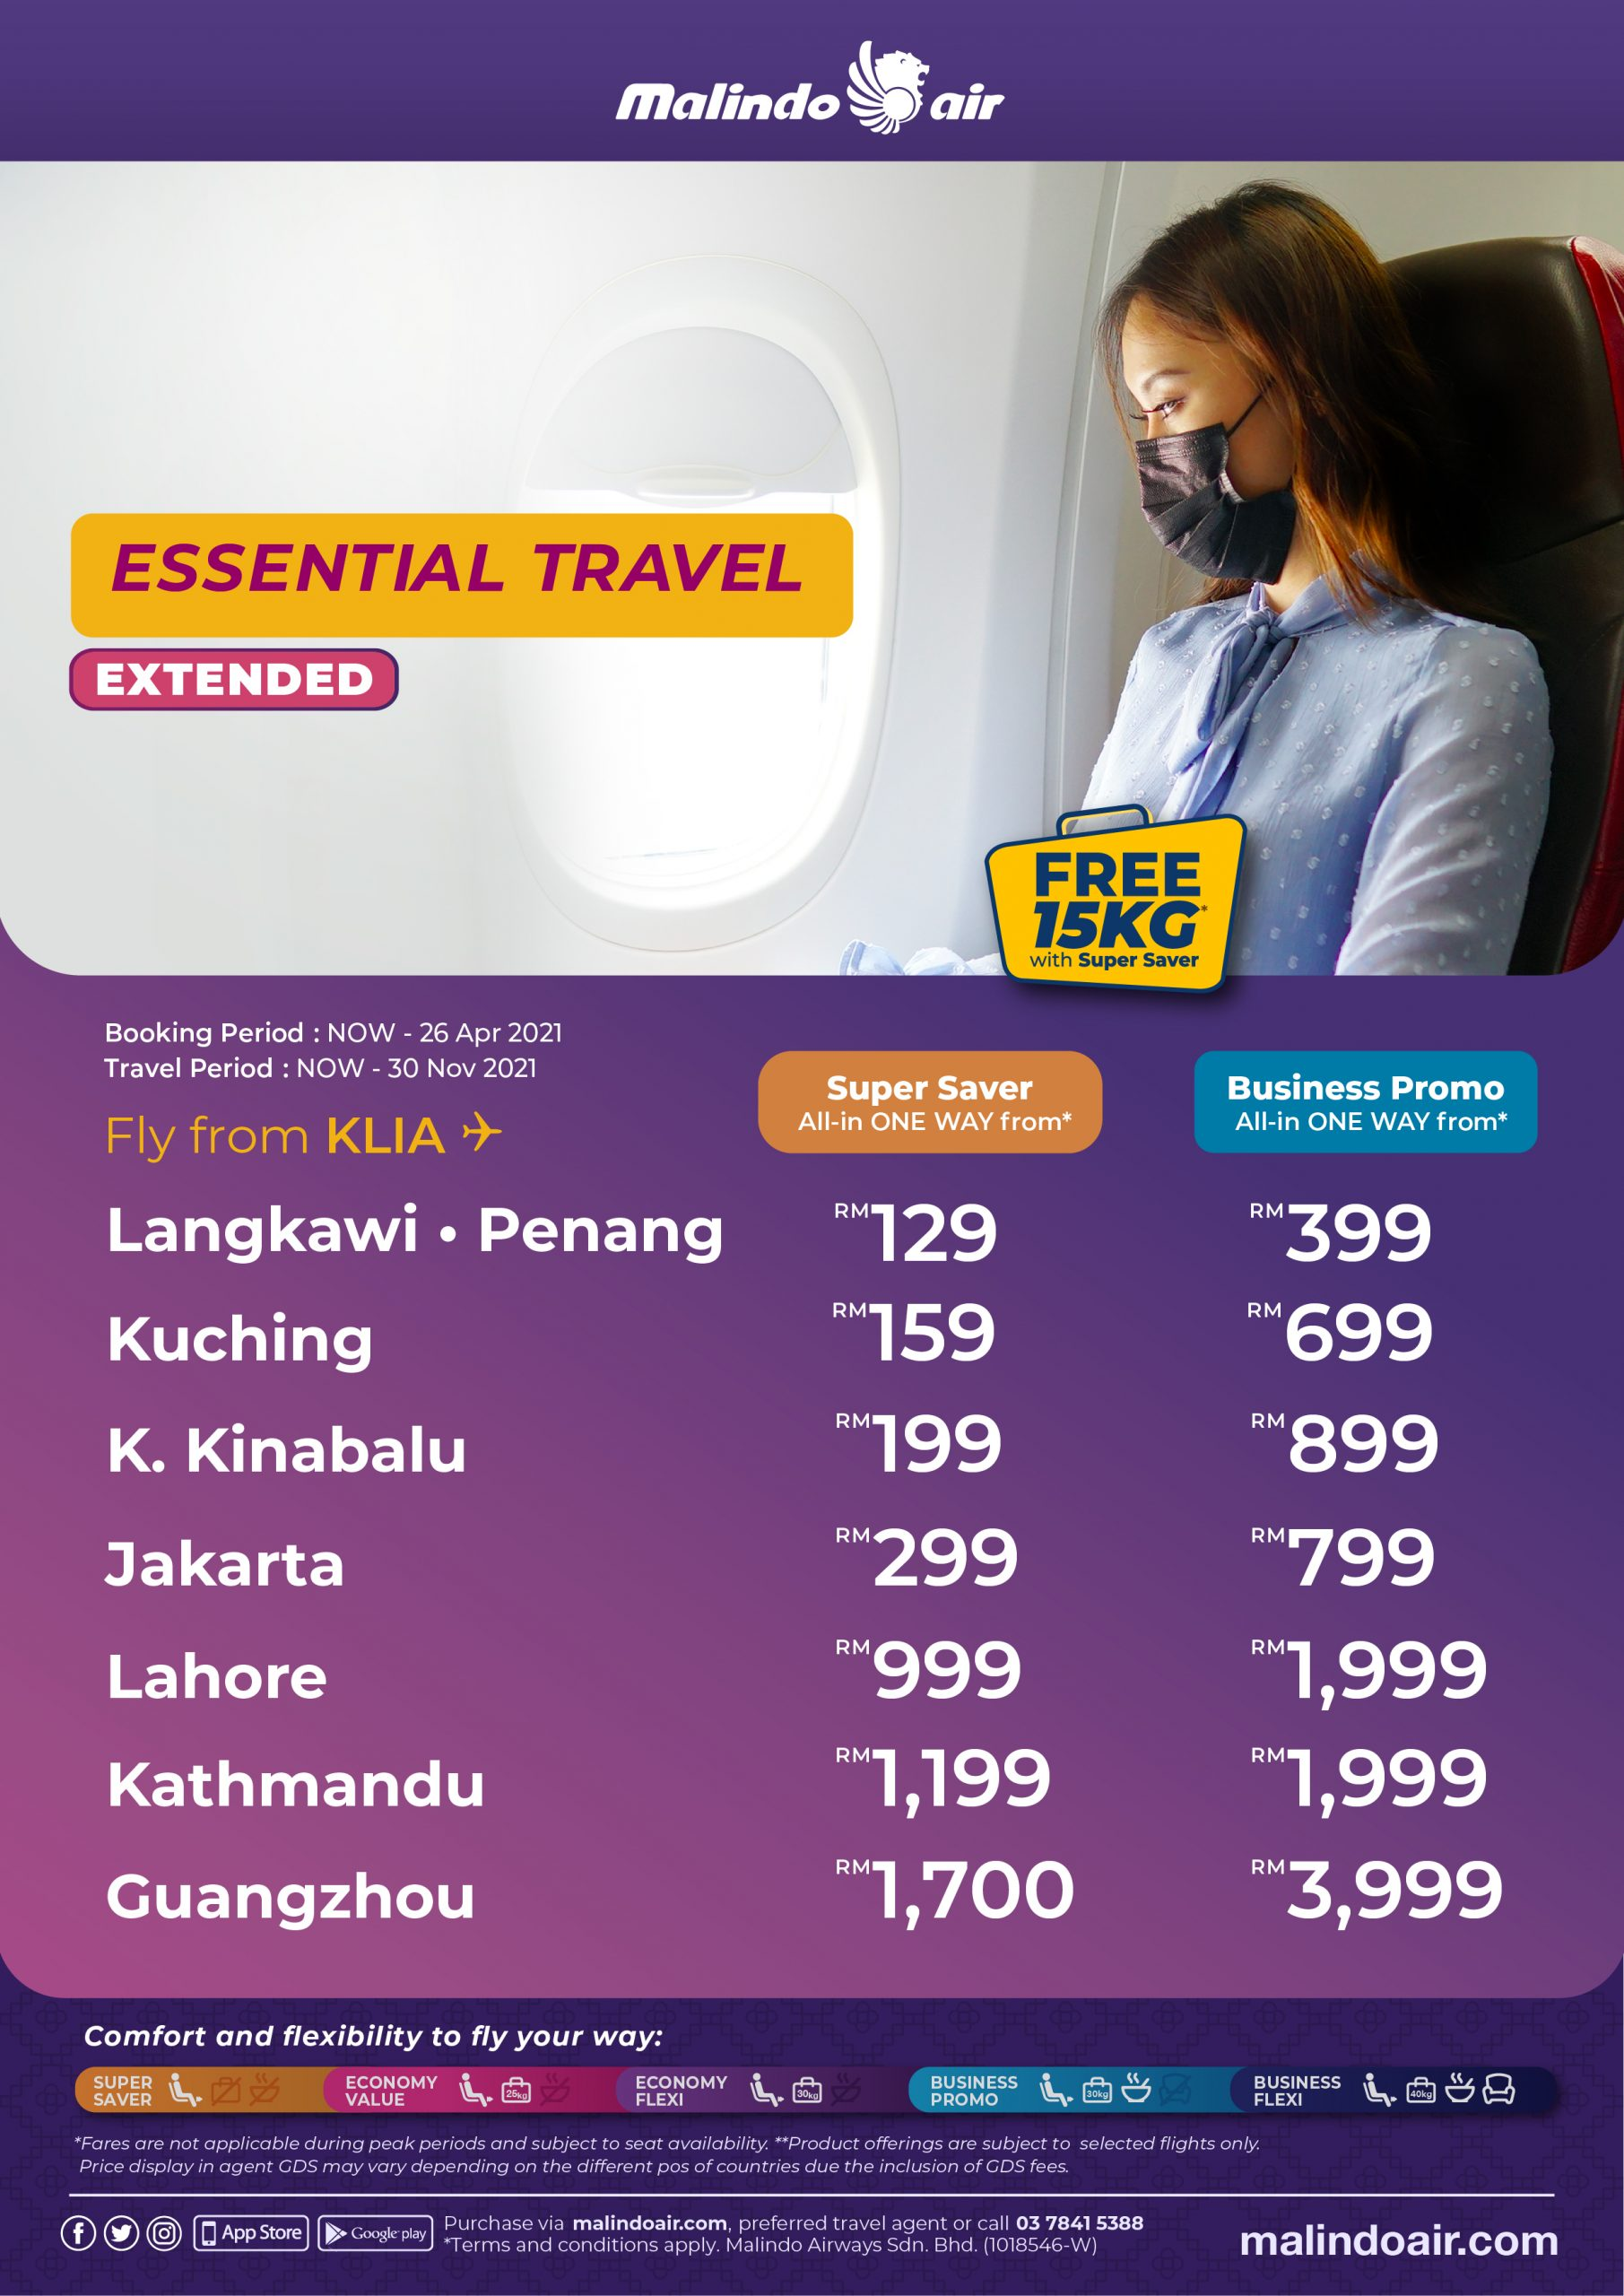 Malindo Air Essential Travel fly from KLIA ESSENTIAL TRAVEL A4 KUL scaled